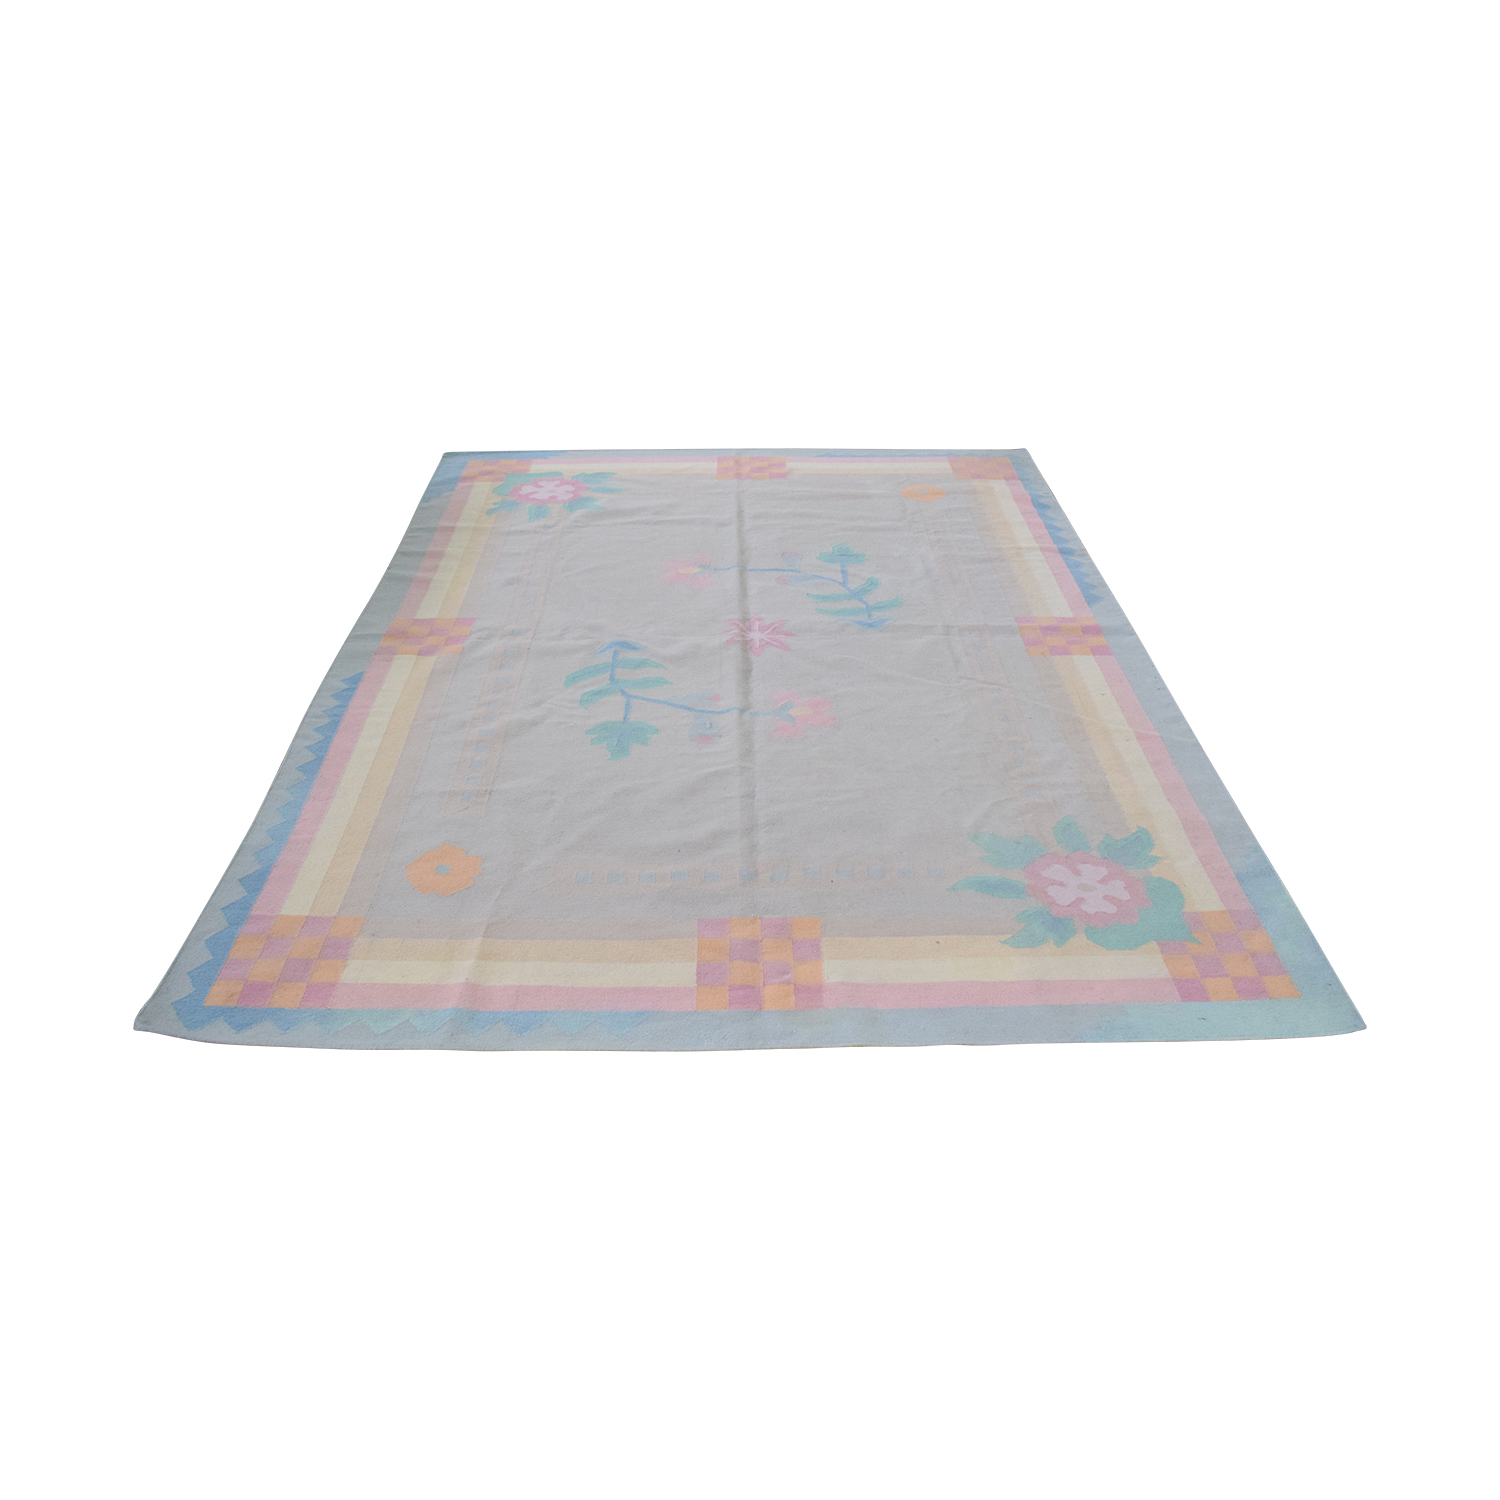 shop ABC Carpet & Home Pastel Rug ABC Carpet & Home